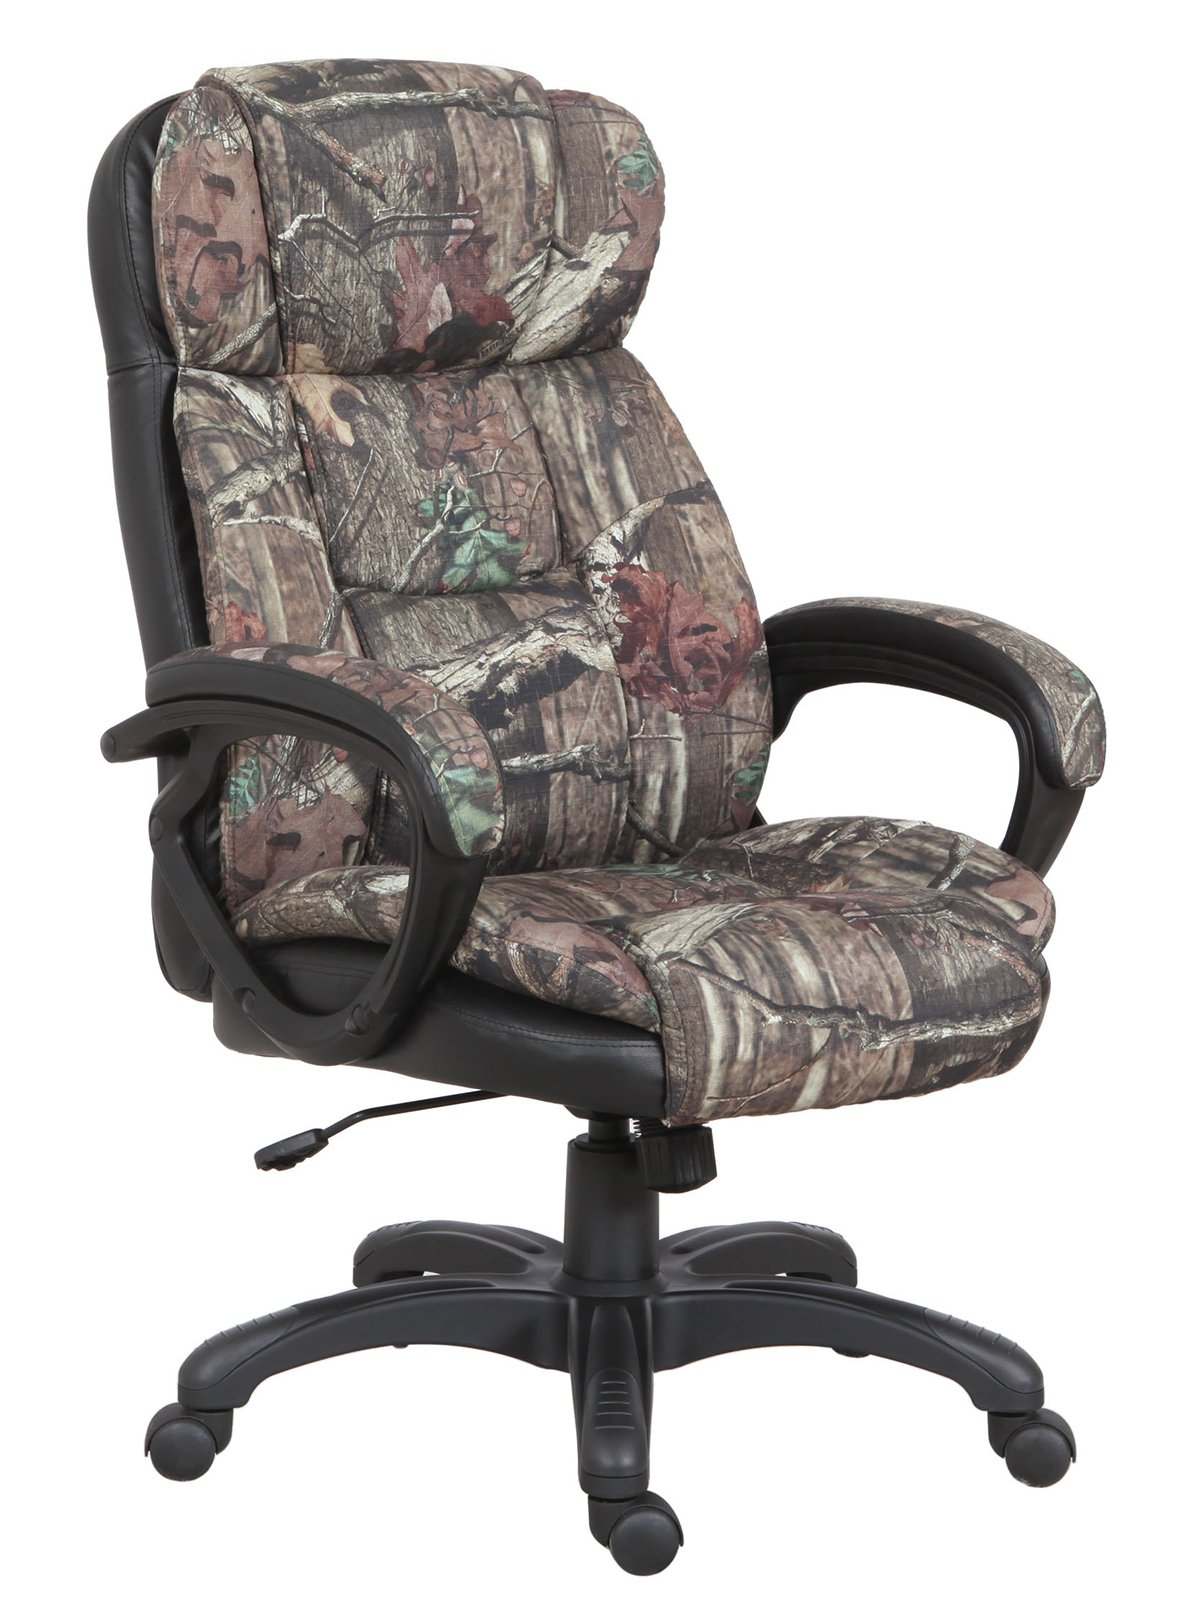 Office Stor Executive Style Chair, Mossy Oak by Office Stor